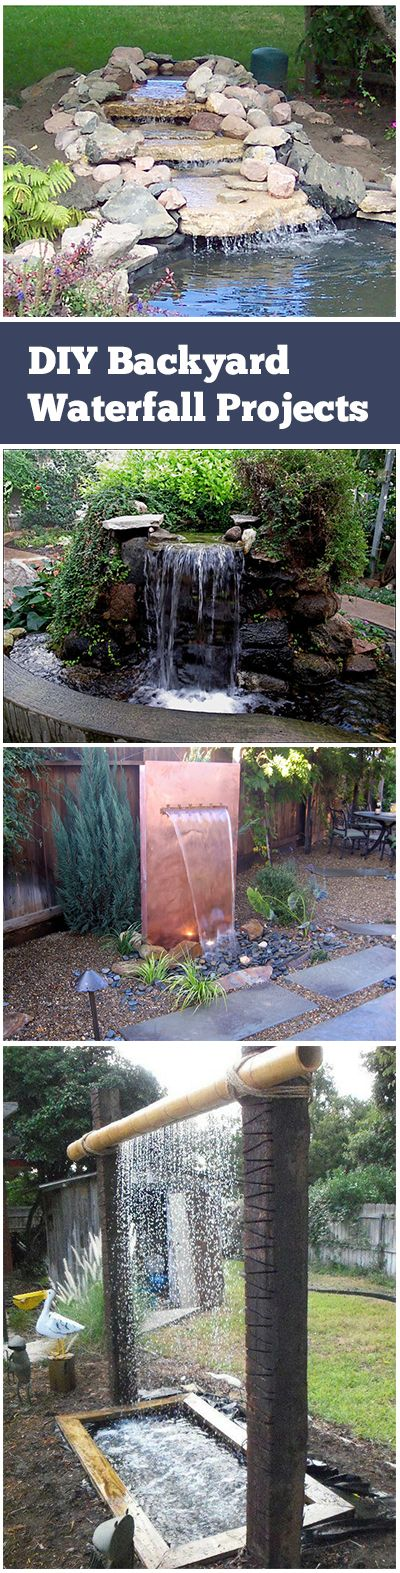 Backyard Water Feature Ideas Diy Waterfalls Ponds And Other Fun Waterfall Designs